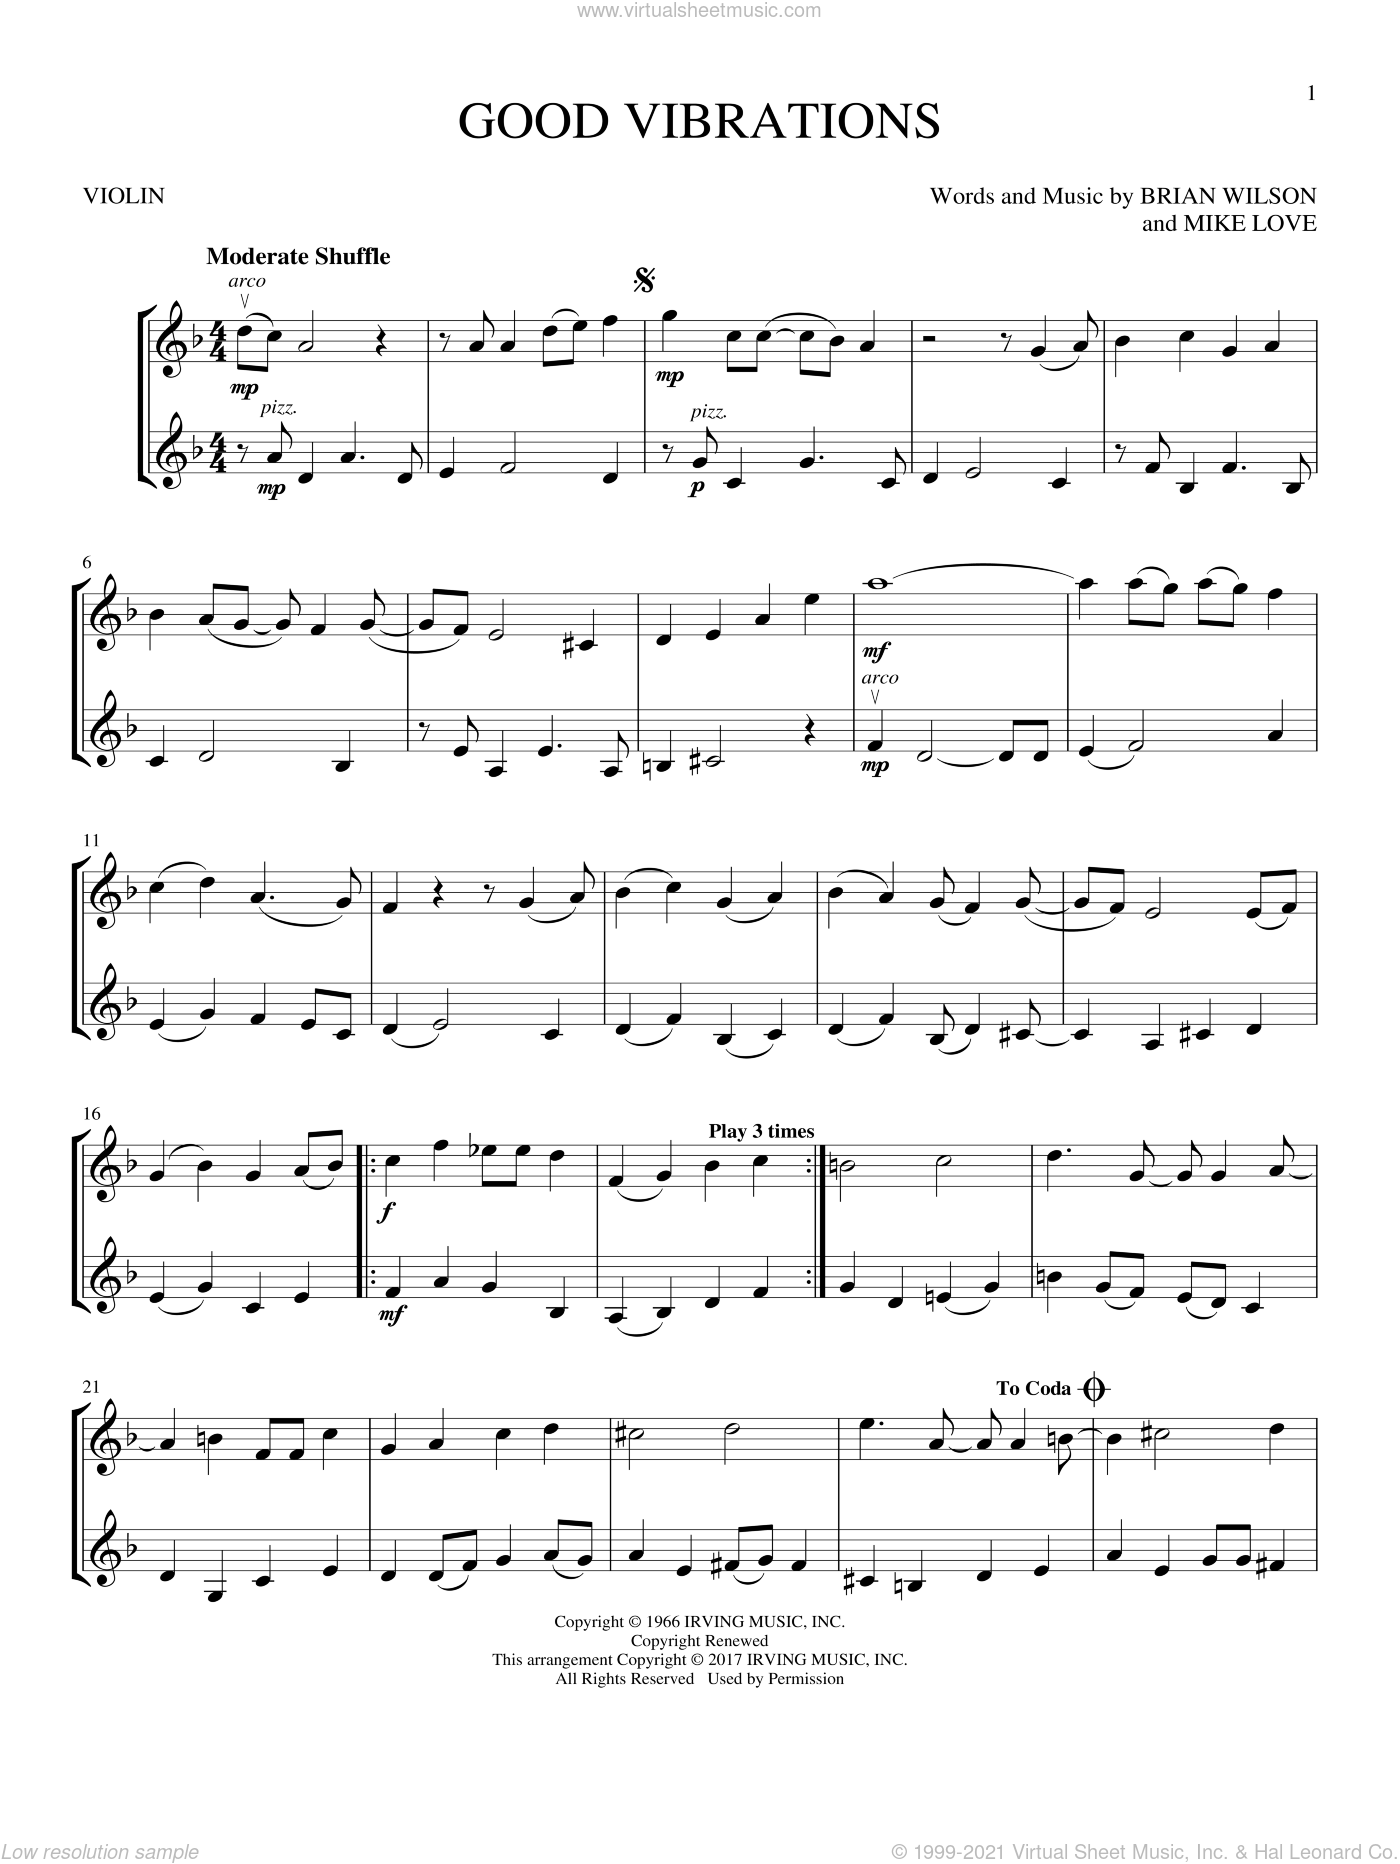 Good Vibrations sheet music for two violins (duets, violin duets) by The Beach Boys, Brian Wilson and Mike Love, intermediate skill level